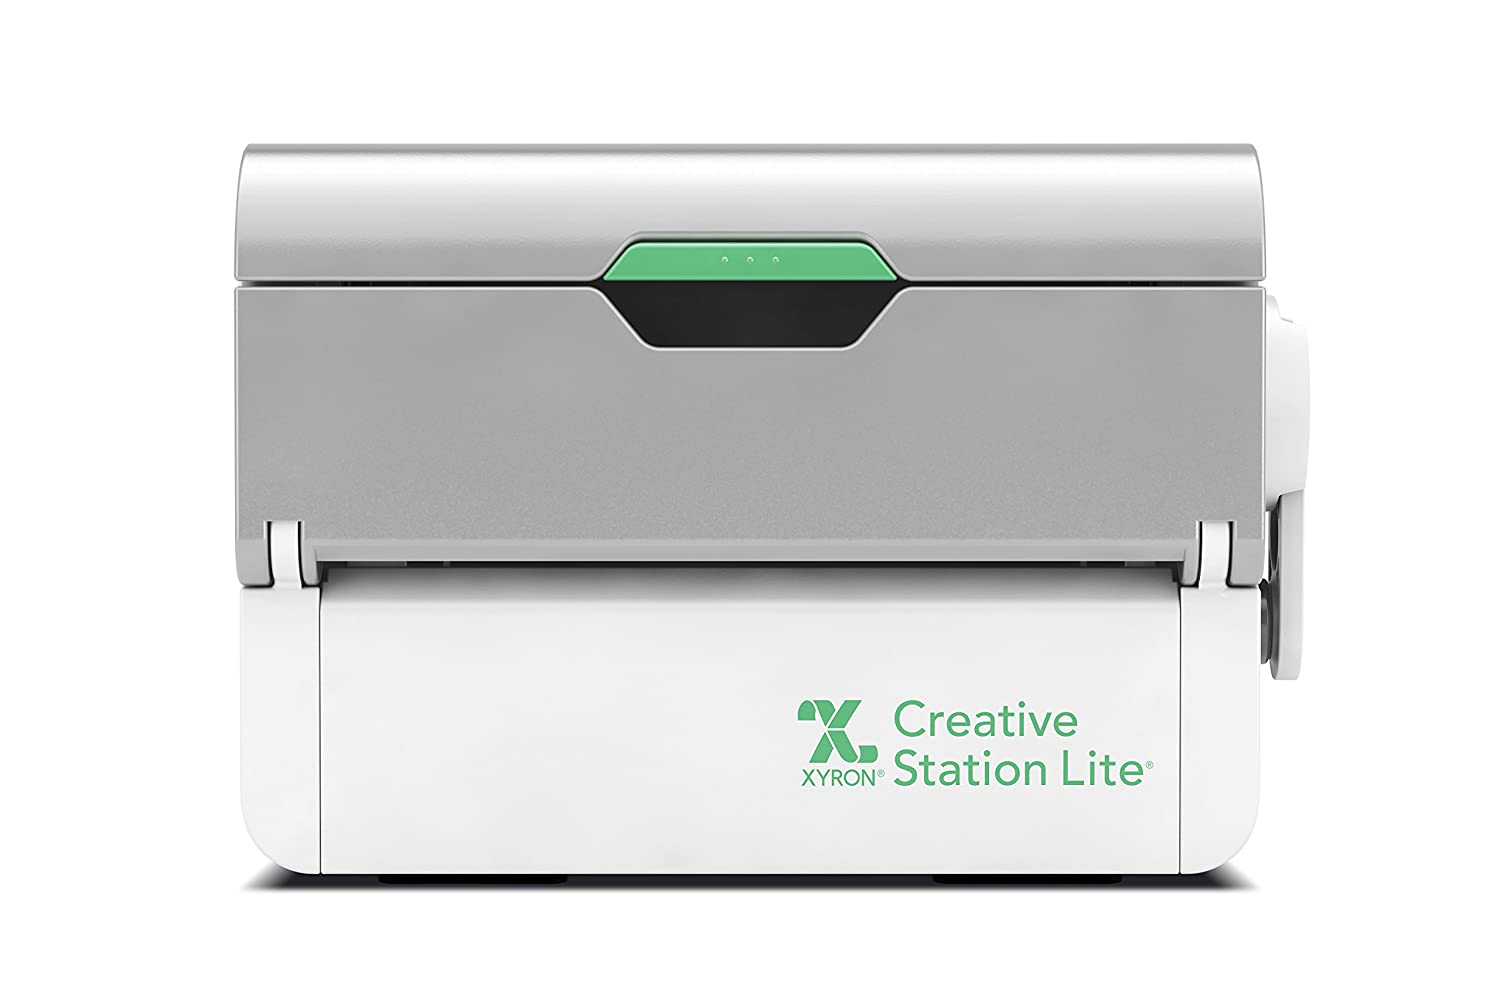 Xyron Creative Station Lite